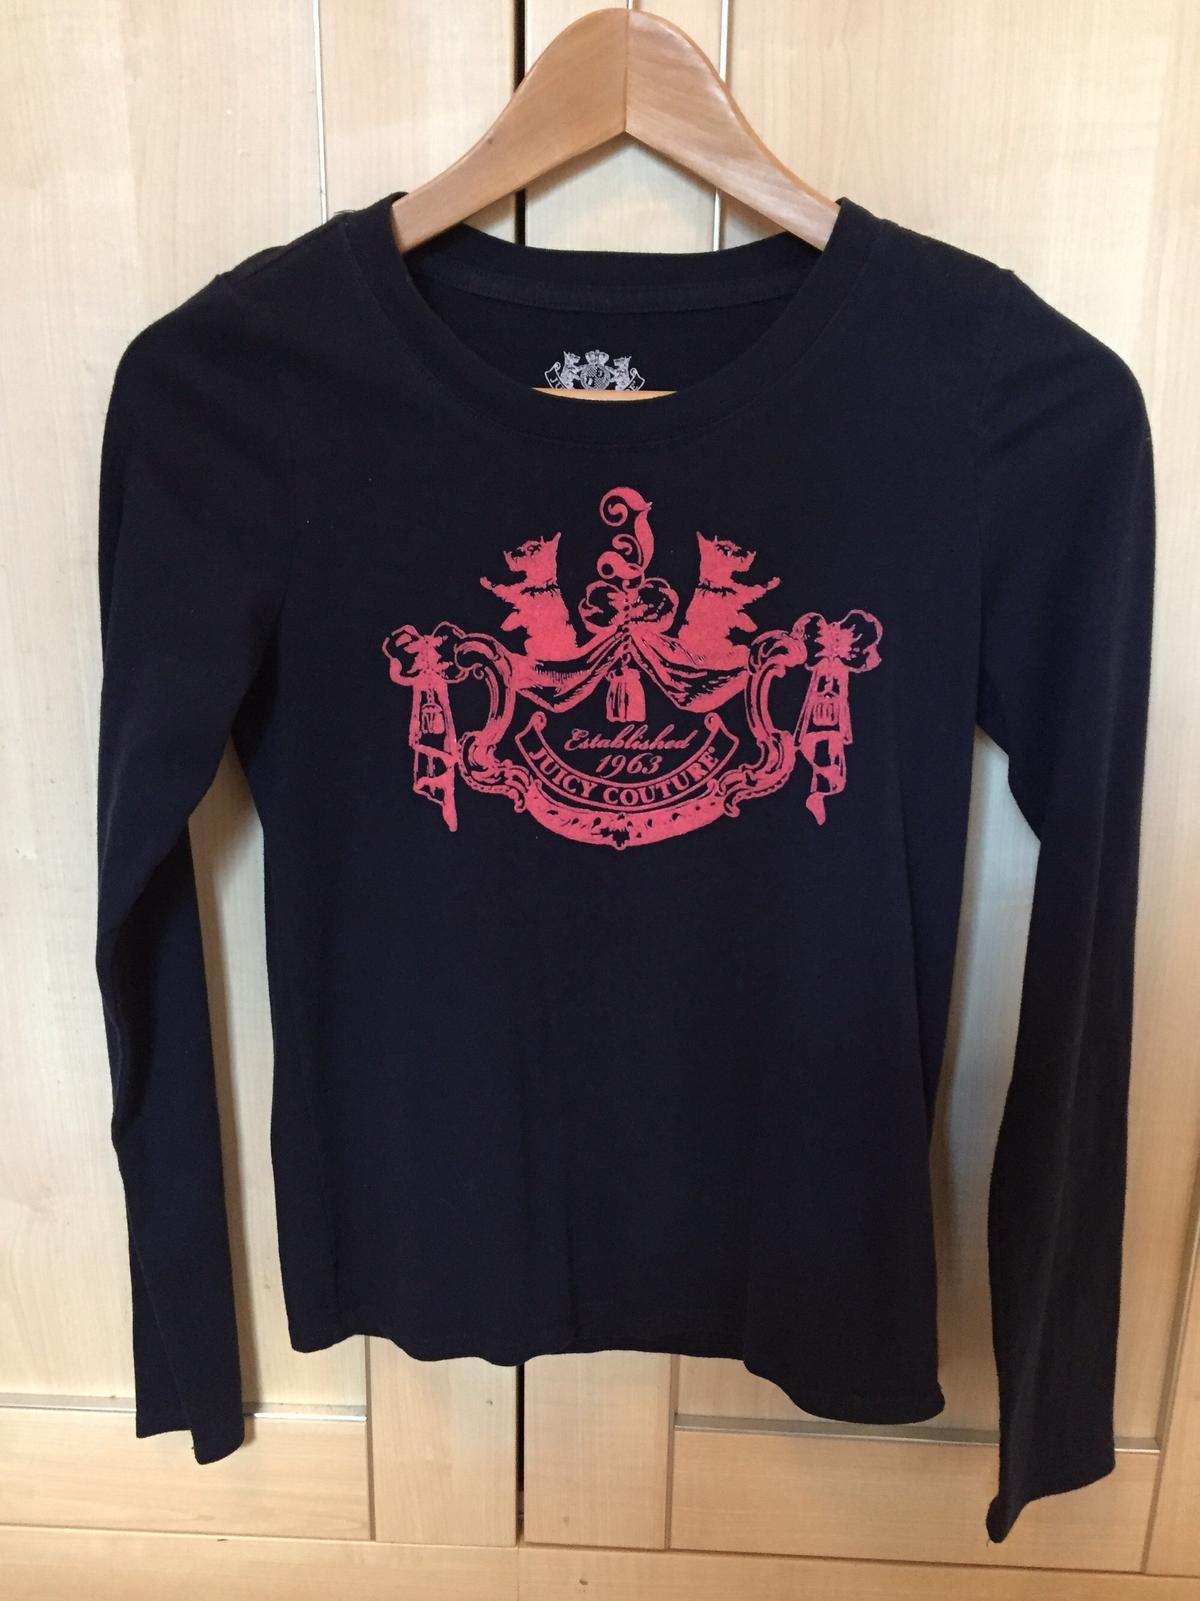 f1a57c6fb Girl's Juicy Couture t-shirt in IG10 Forest for £15.00 for sale - Shpock